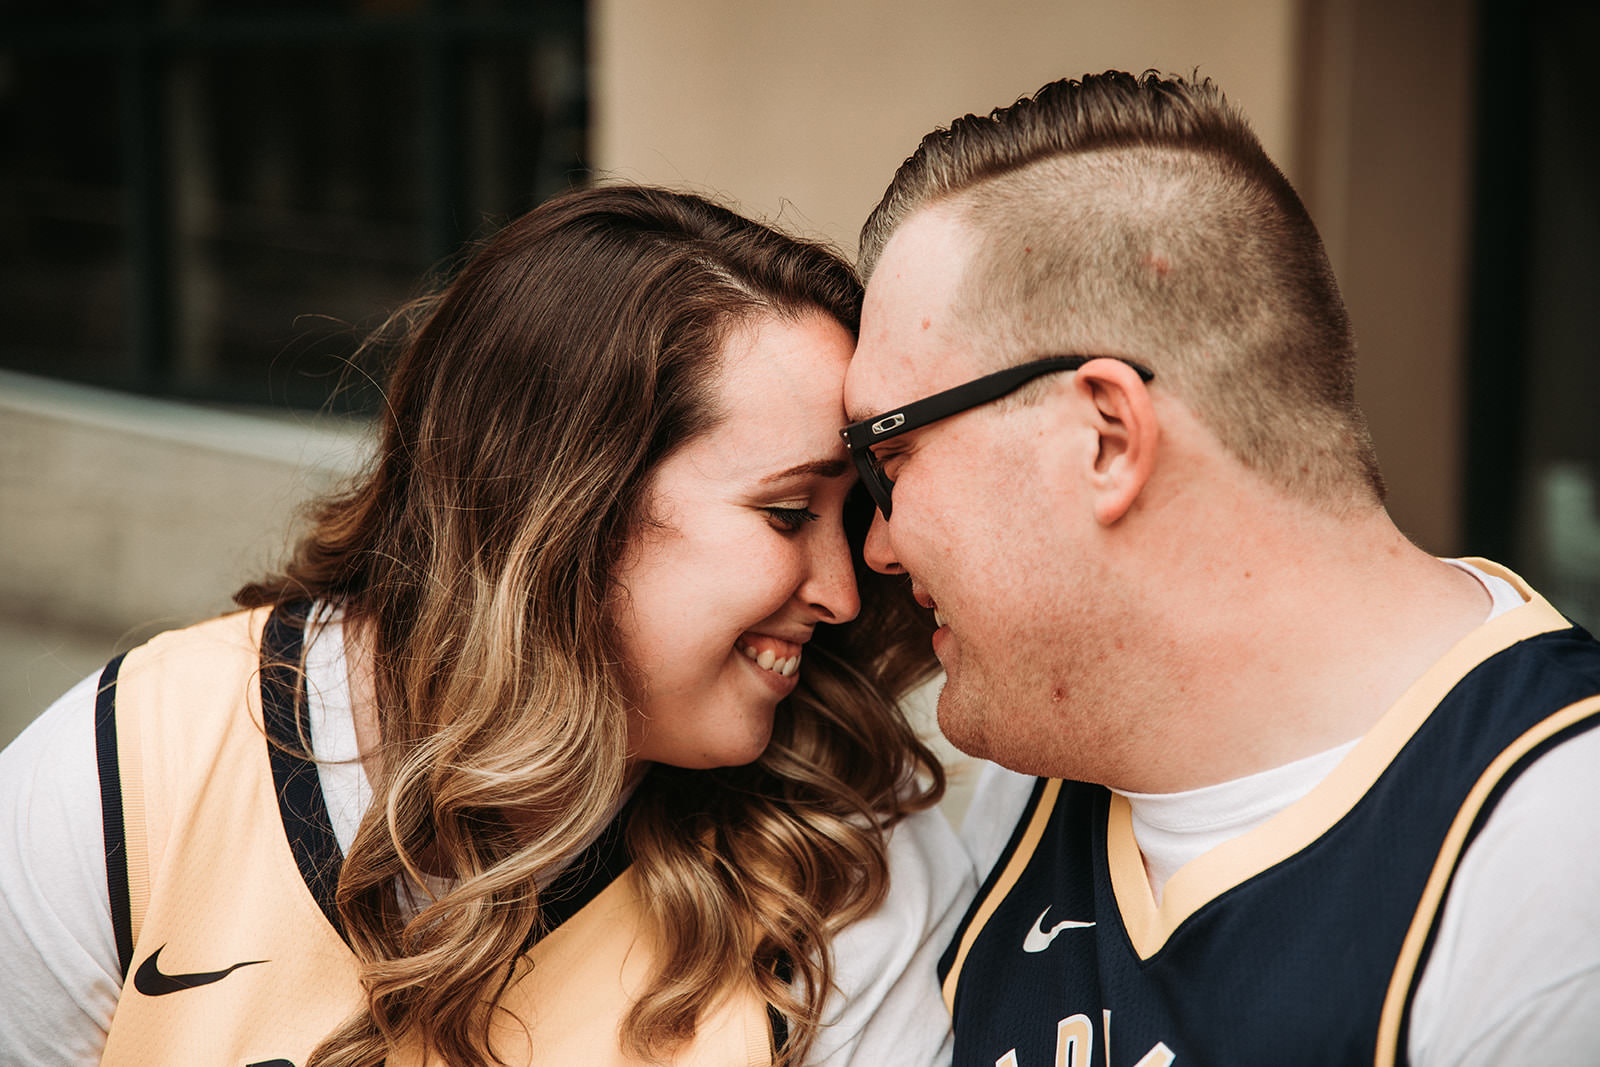 DowntownIndianapolisSpringEngagementPhotos-8.jpg